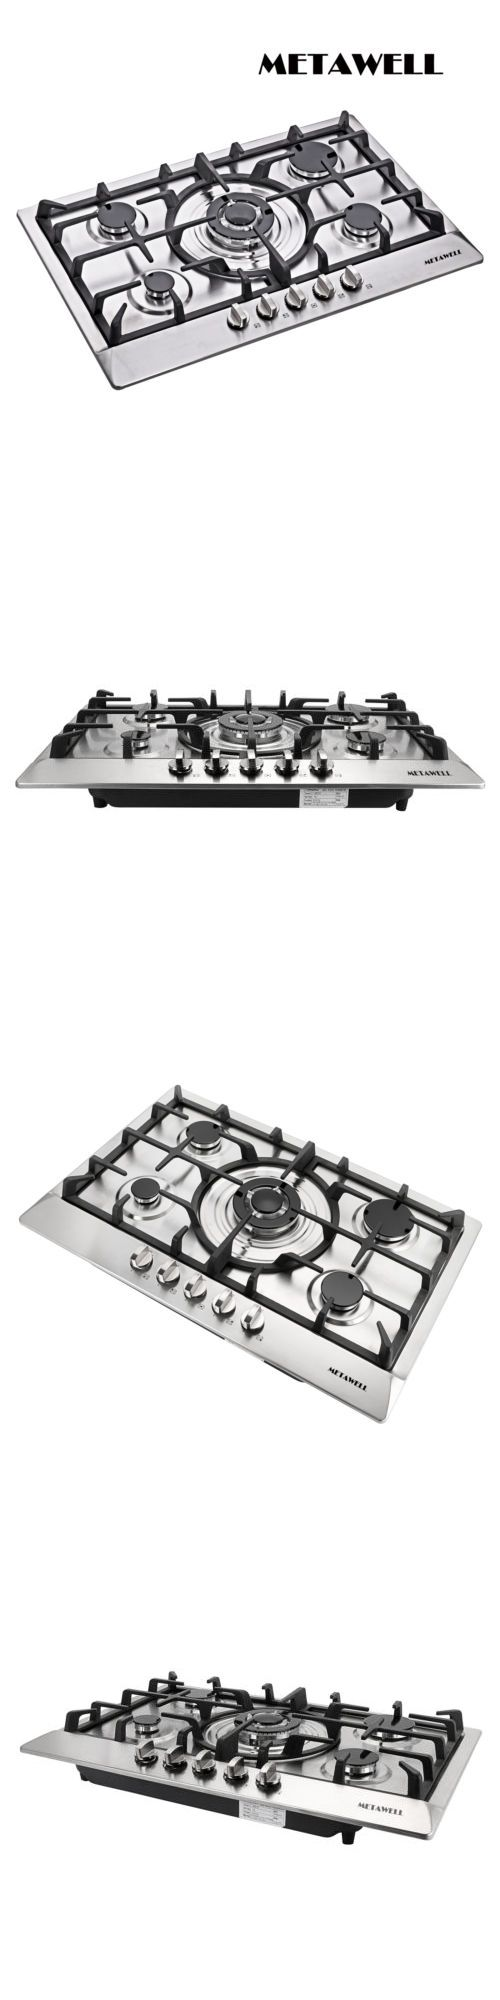 Cooktops 71246 Metawell 3kw 30 Gas Stainless Steel Cooktop Stove Cook Top 5 Burner Silver U Stainless Steel Cooktop Stackable Washer Dryer Dimensions Cooktop